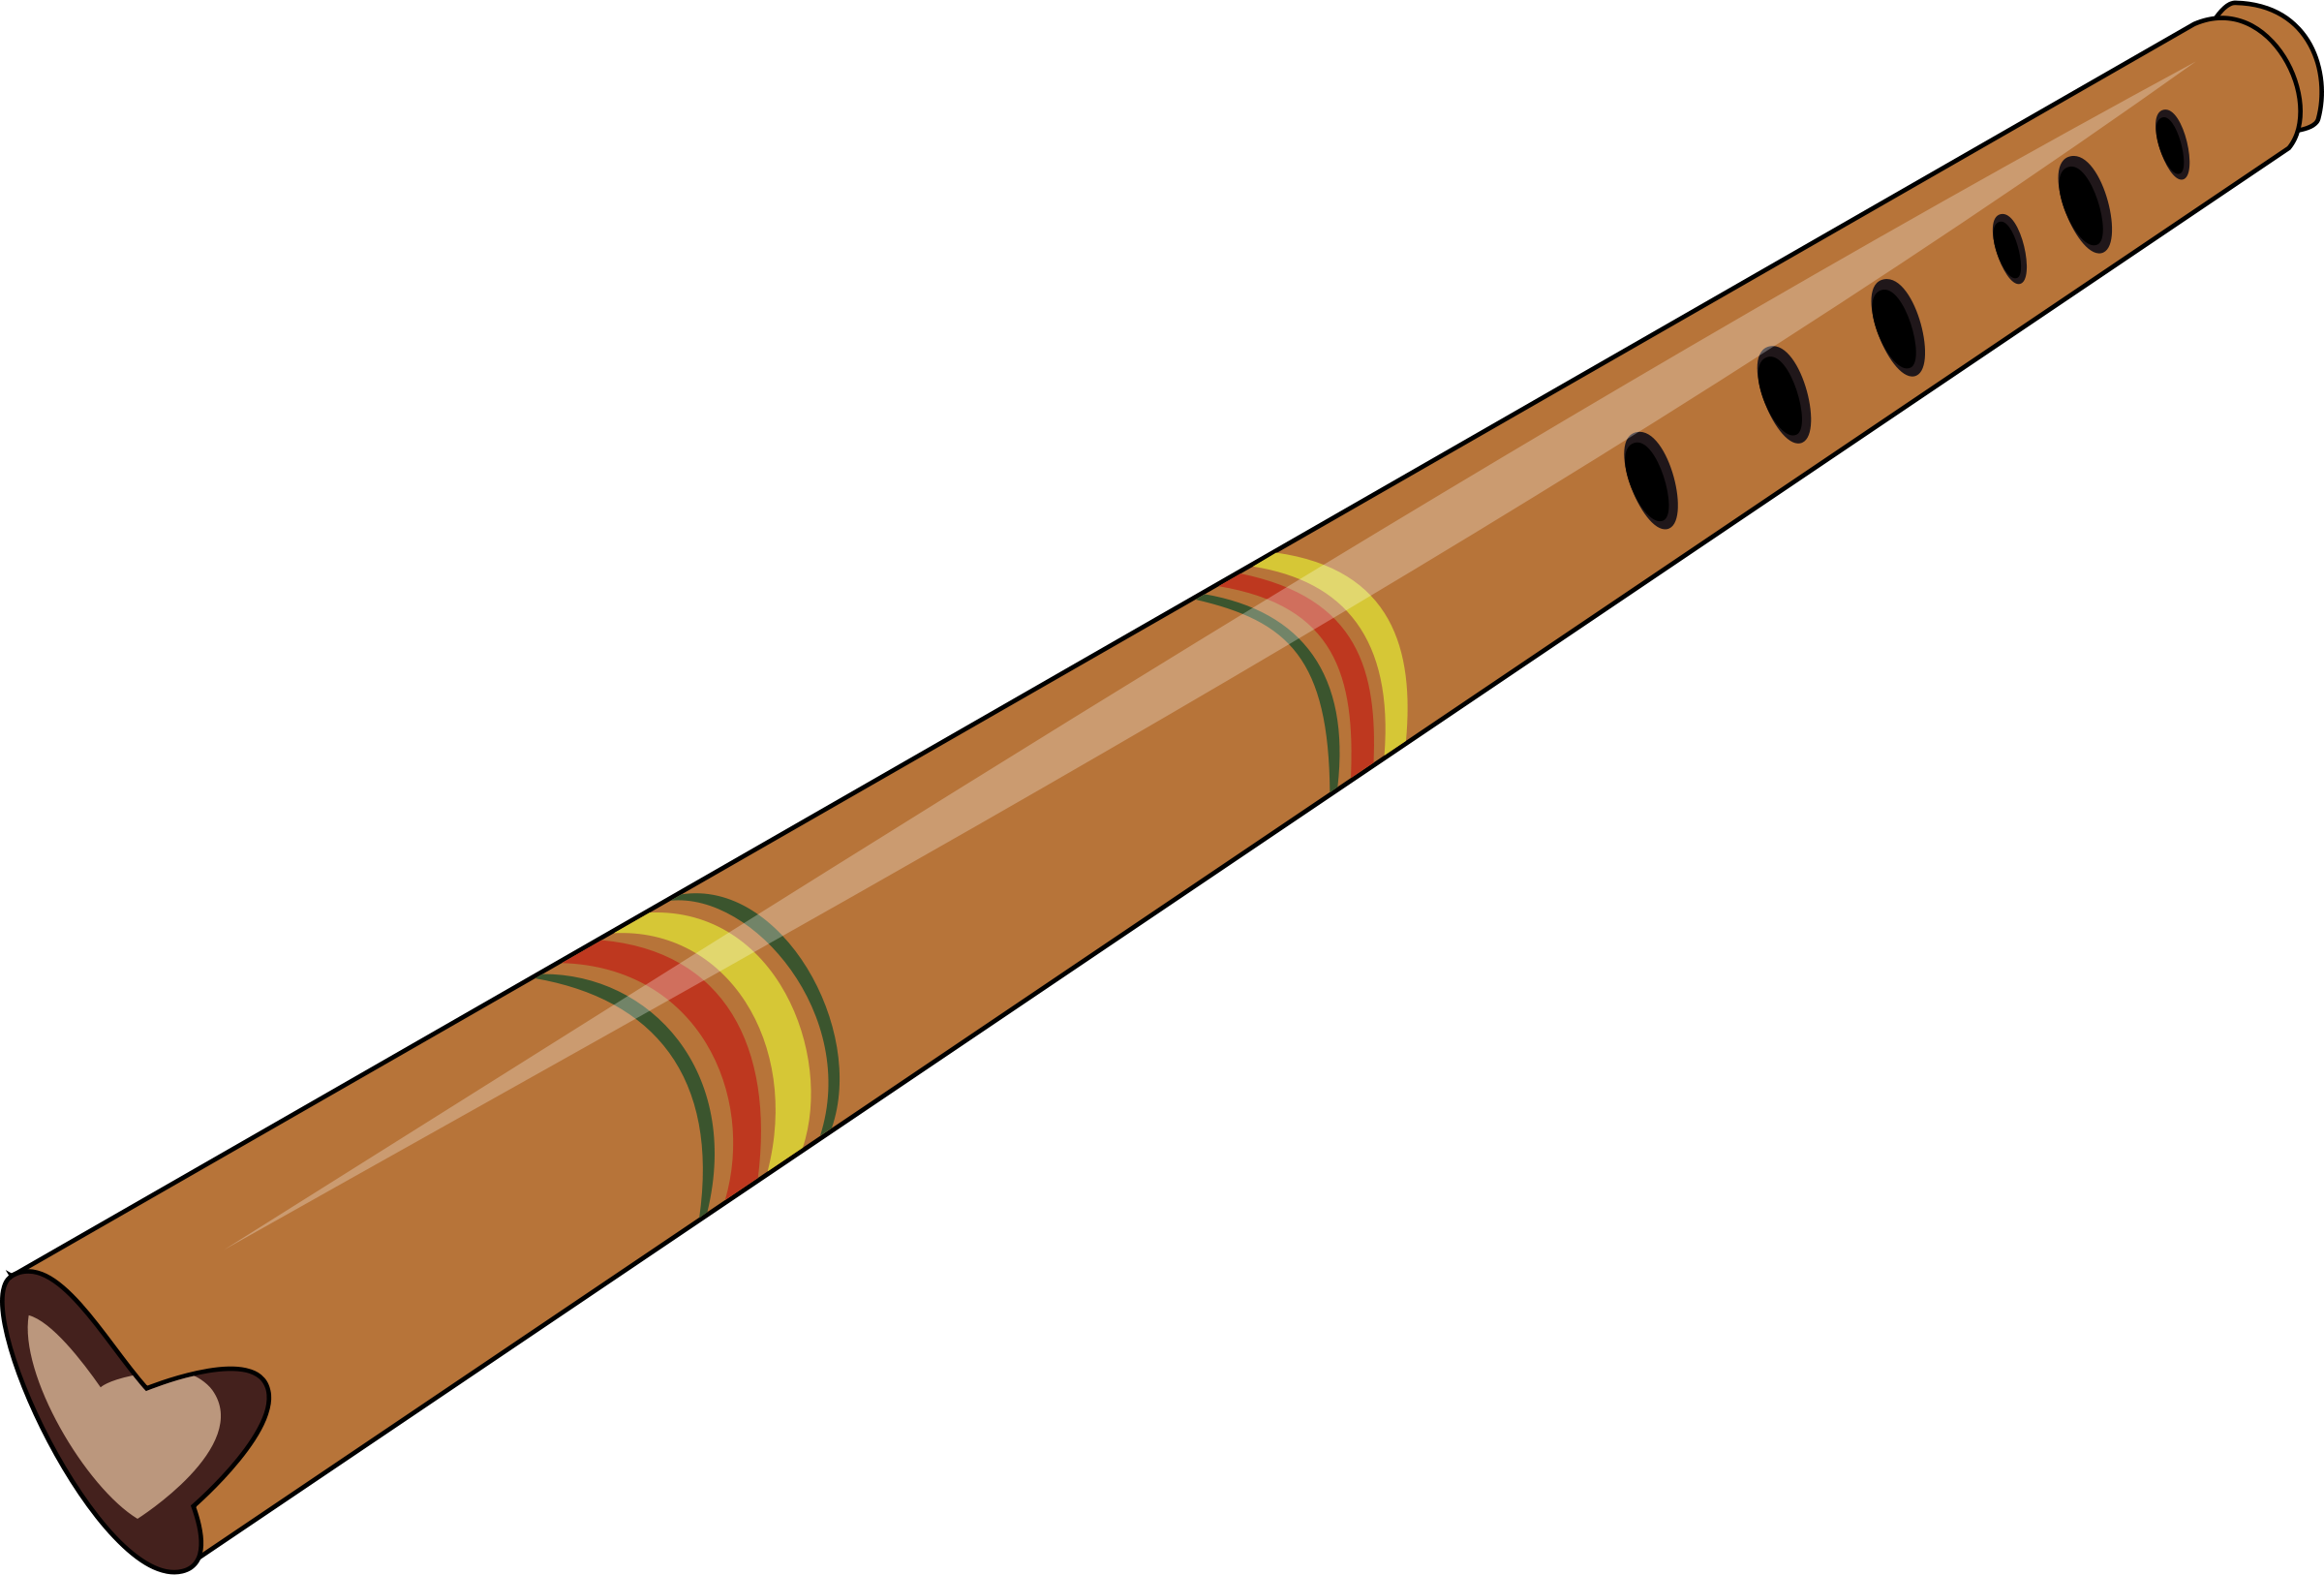 Wooden flute clipart - Clipground